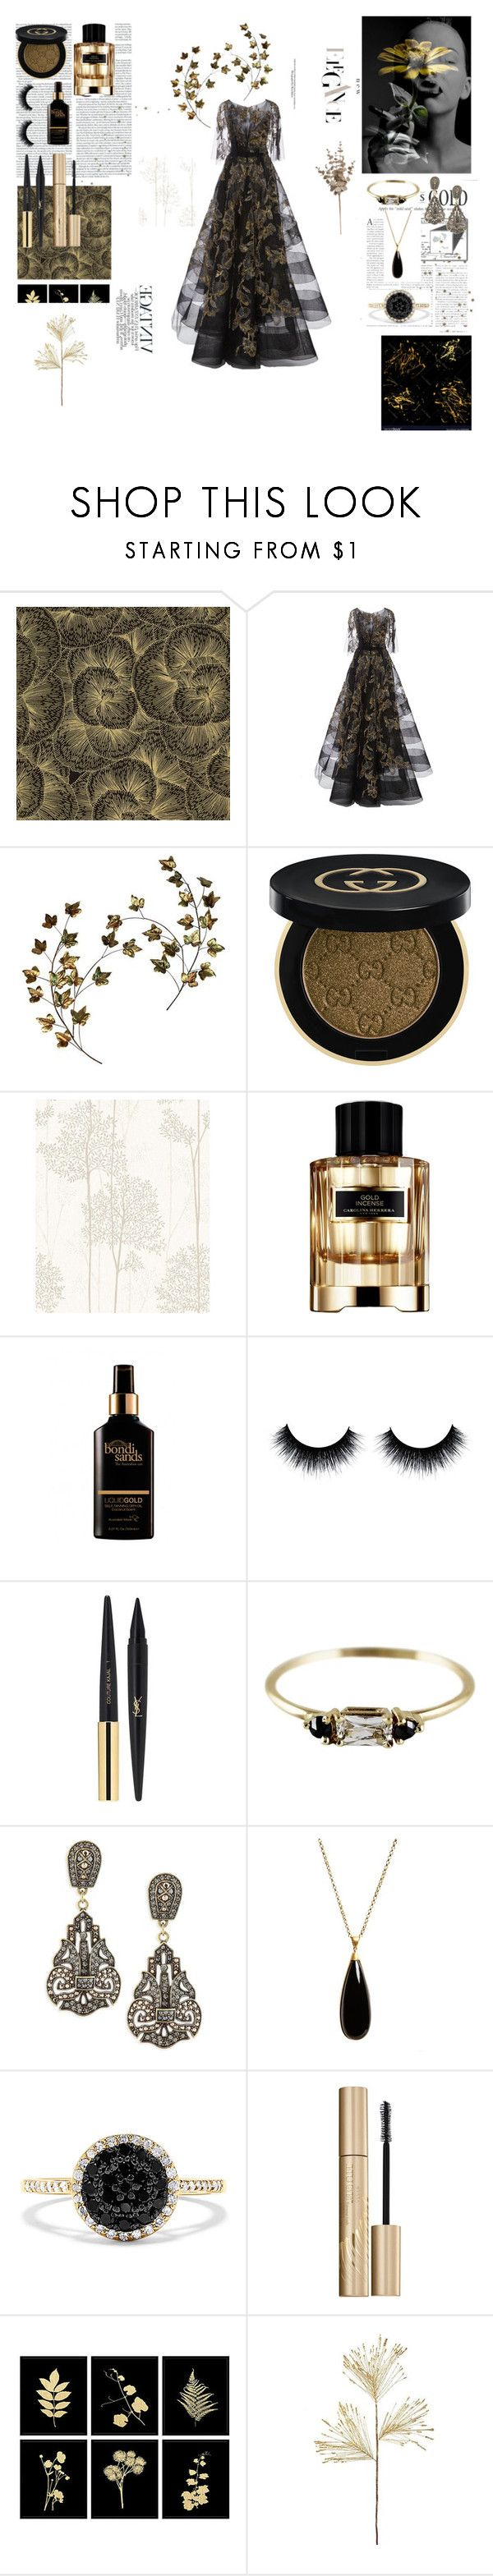 """#PolyPresents: Sparkly Beauty"" by charlotte-sophie-lensen on Polyvore featuring beauty, Marchesa, Gucci, Graham & Brown, Carolina Herrera, Yves Saint Laurent, Heidi Daus, Dean Davidson, Effy Jewelry and Stila"